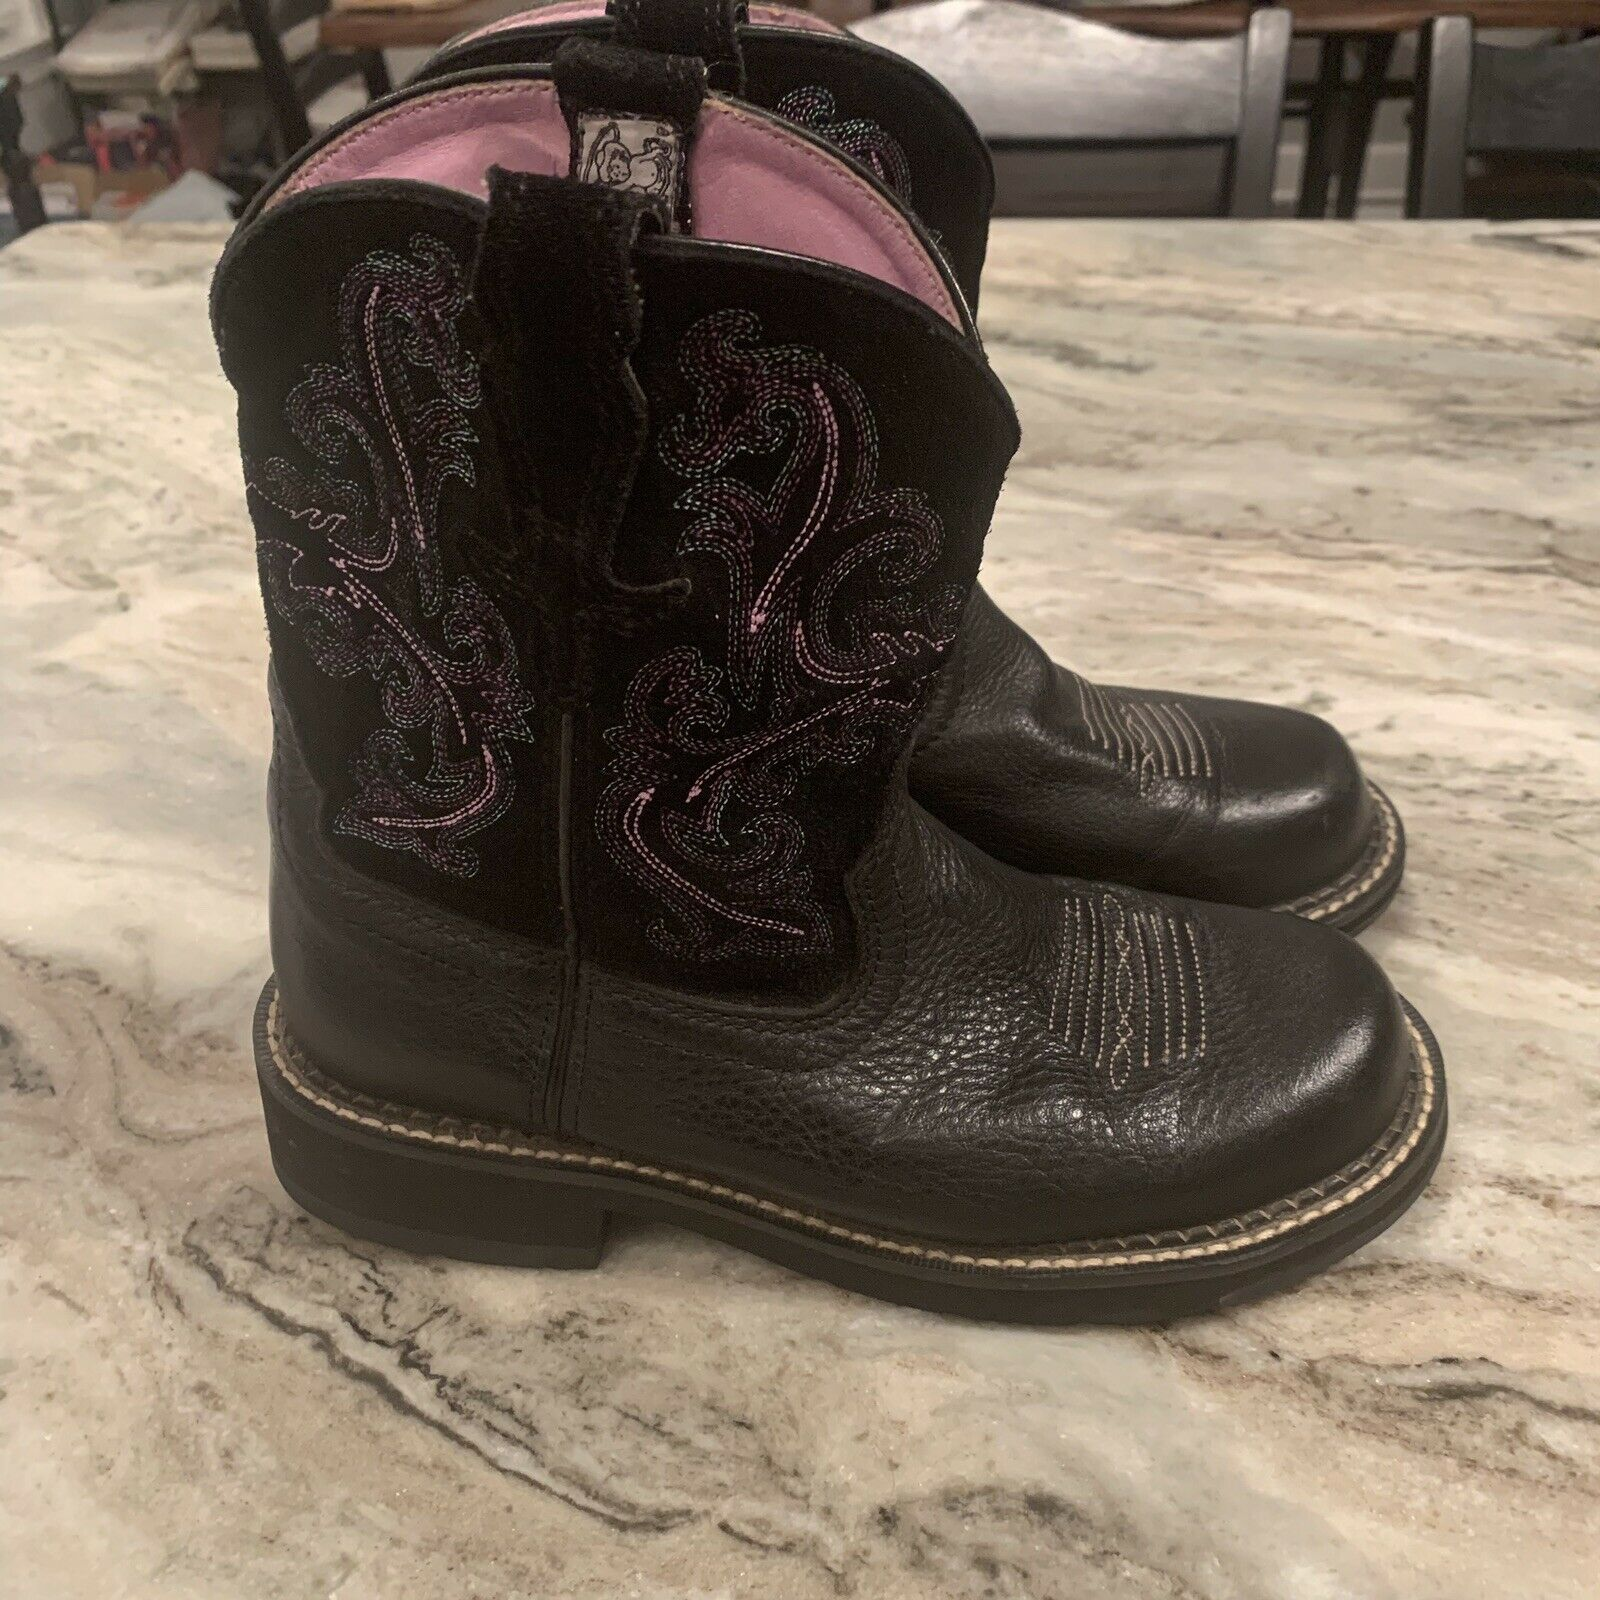 FATBABY II Western Riding Boots black with pink lining Women's size 7 B Pull On